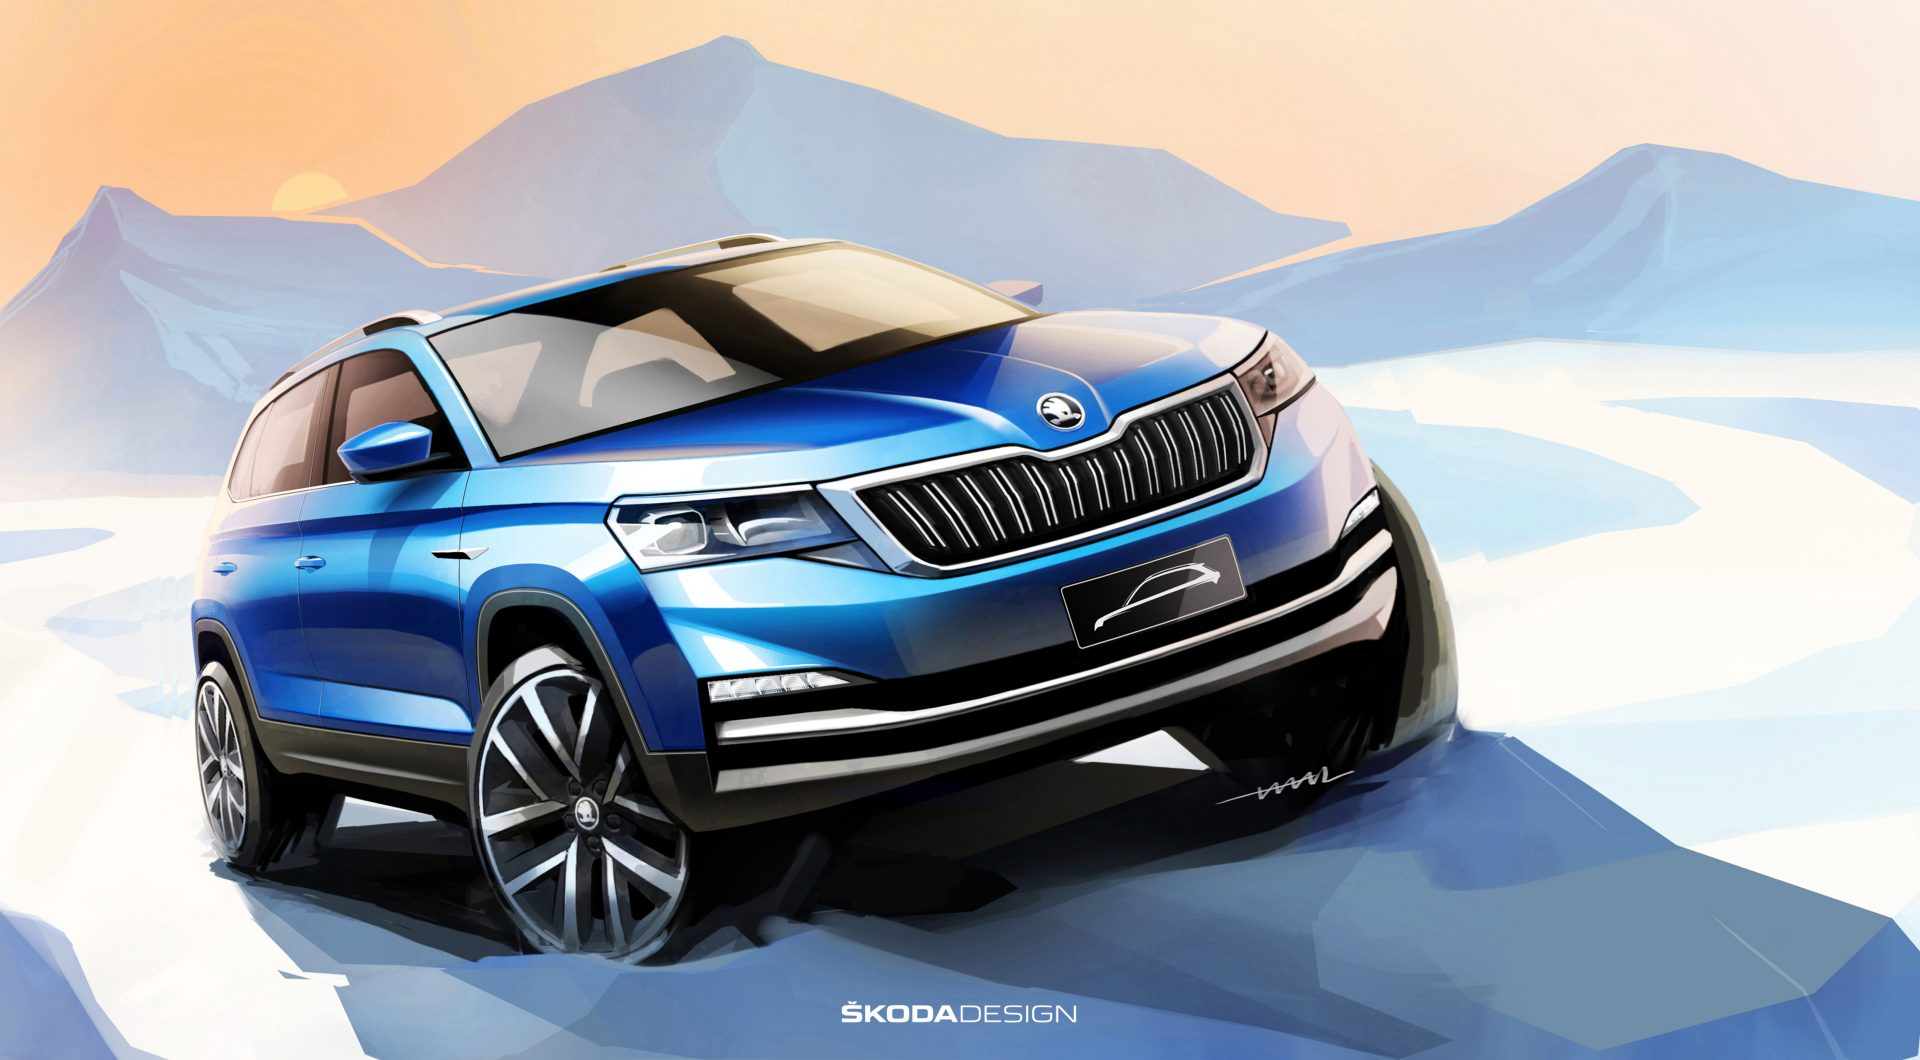 A NEW ŠKODA FOR CHINA – FIRST SKETCHES OF THE MAINSTREAM CITY SUV